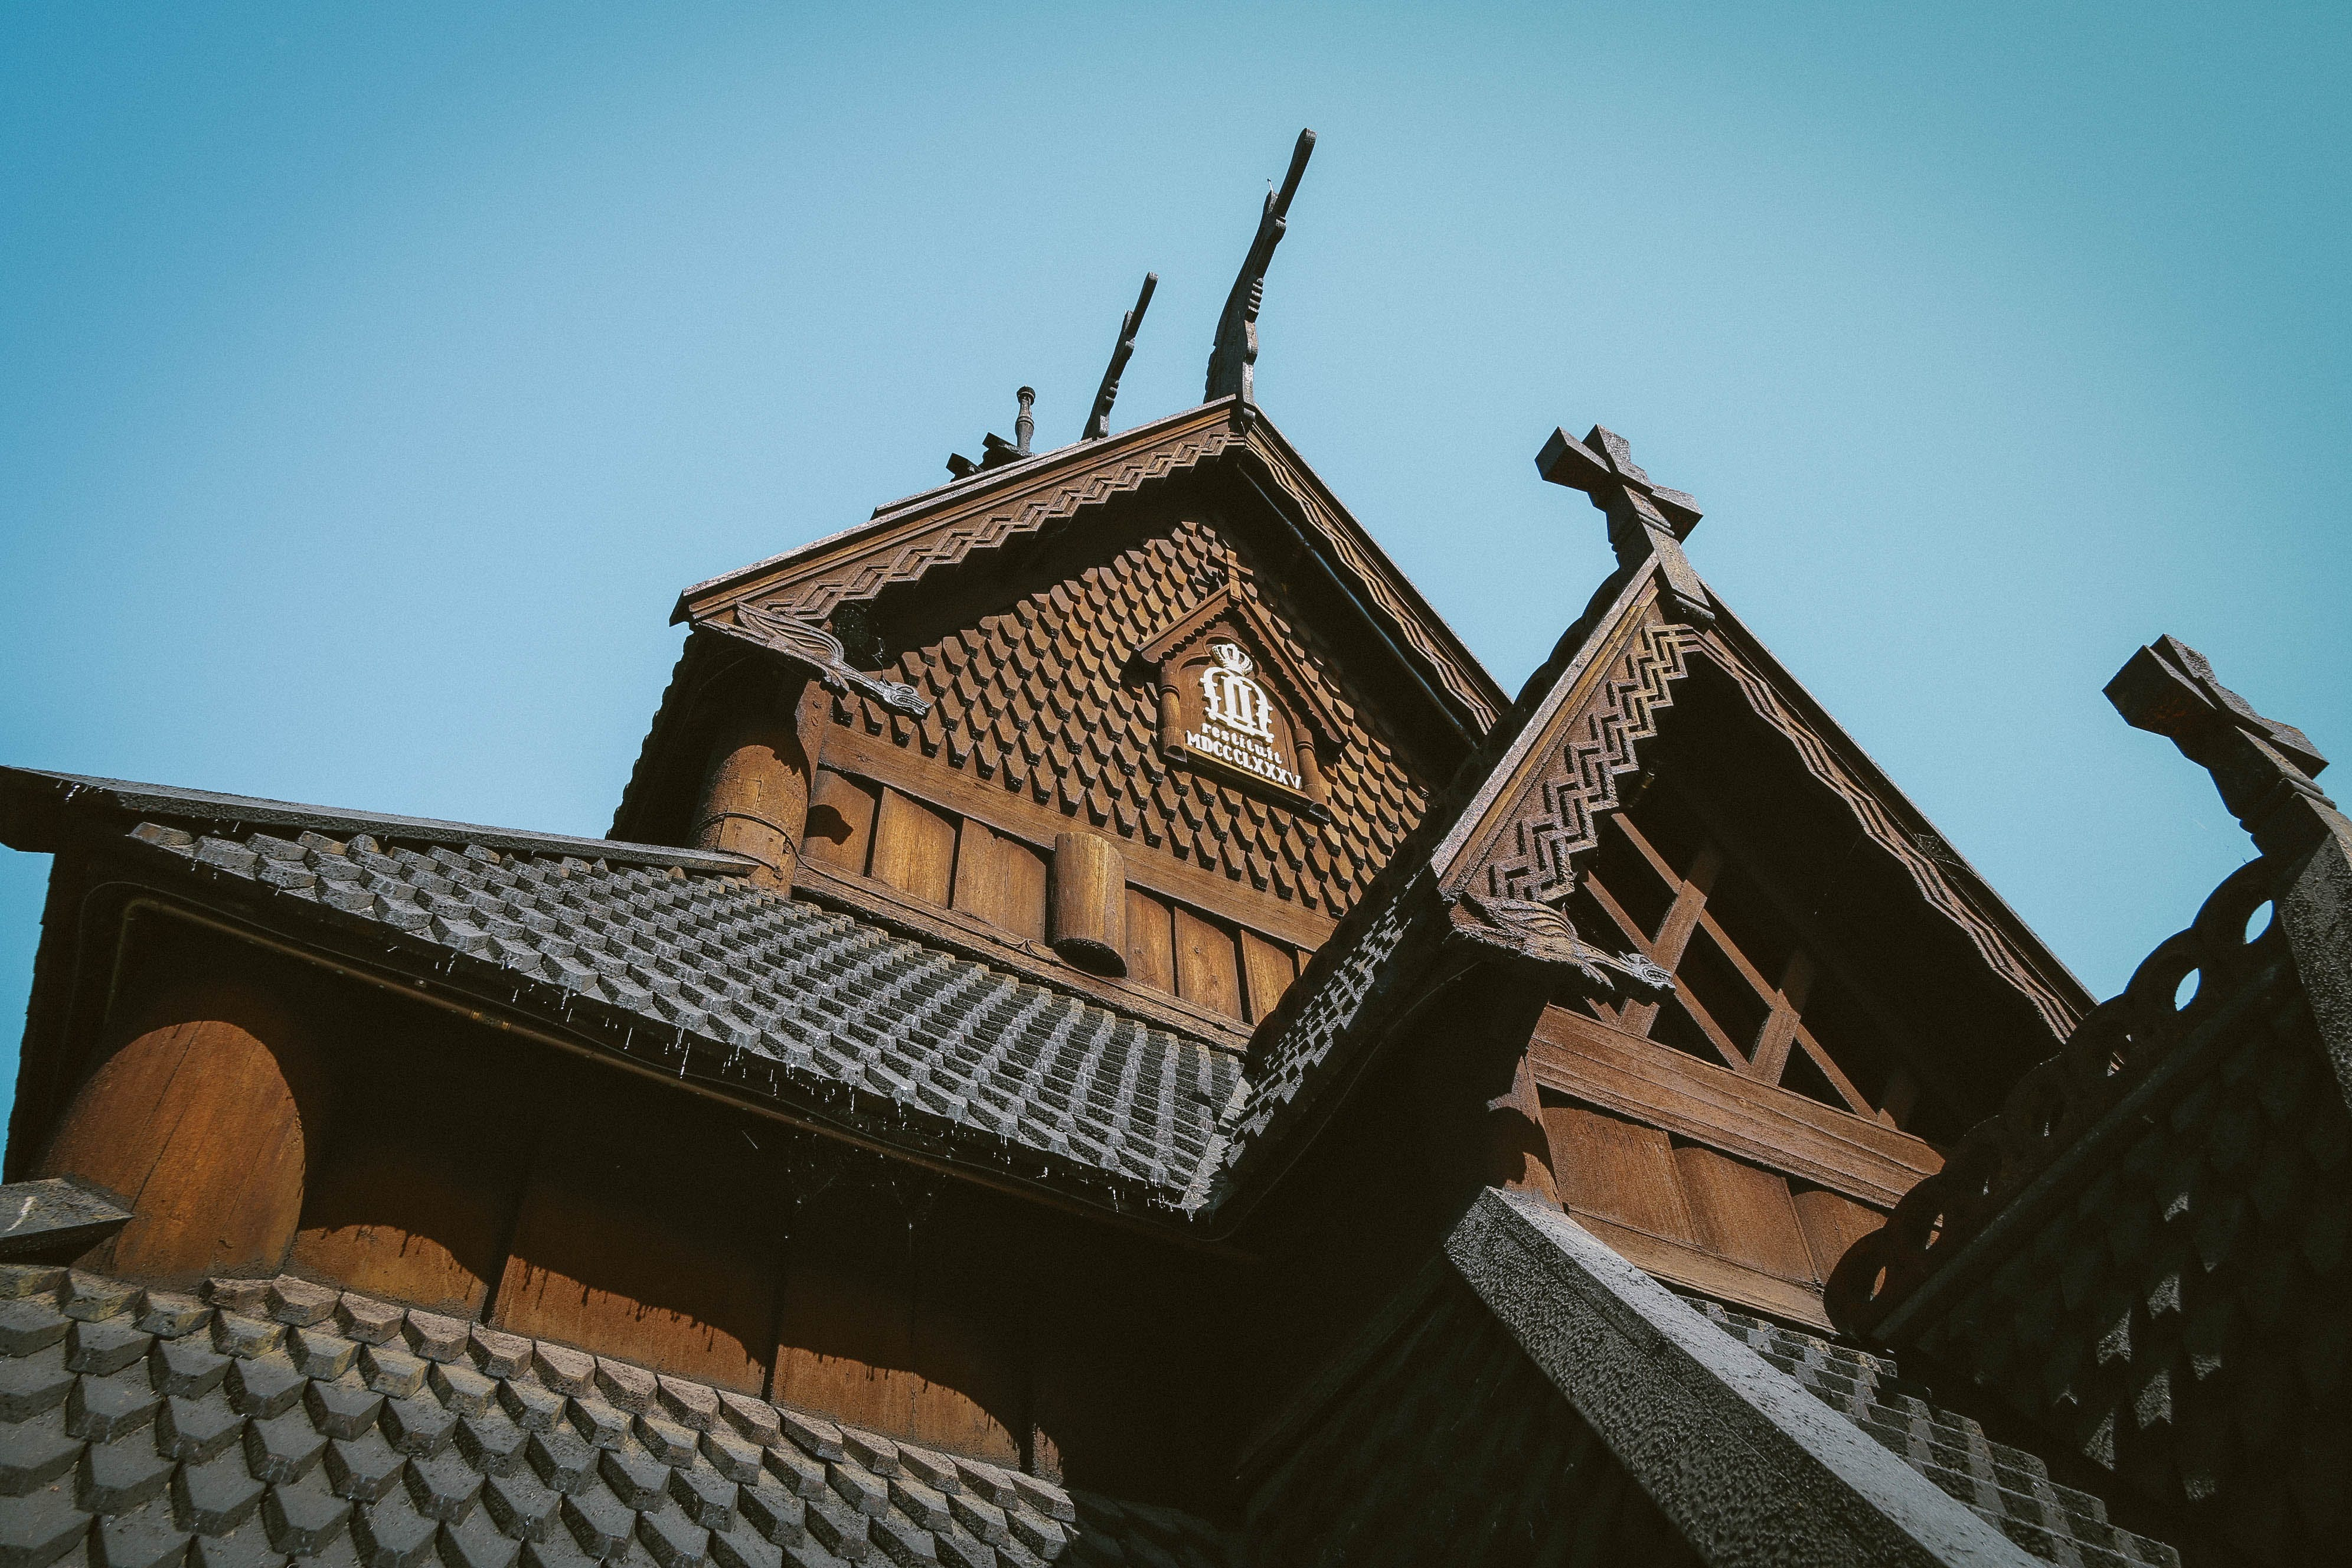 Free stock photo of architecture, carved wood, church building, northern church